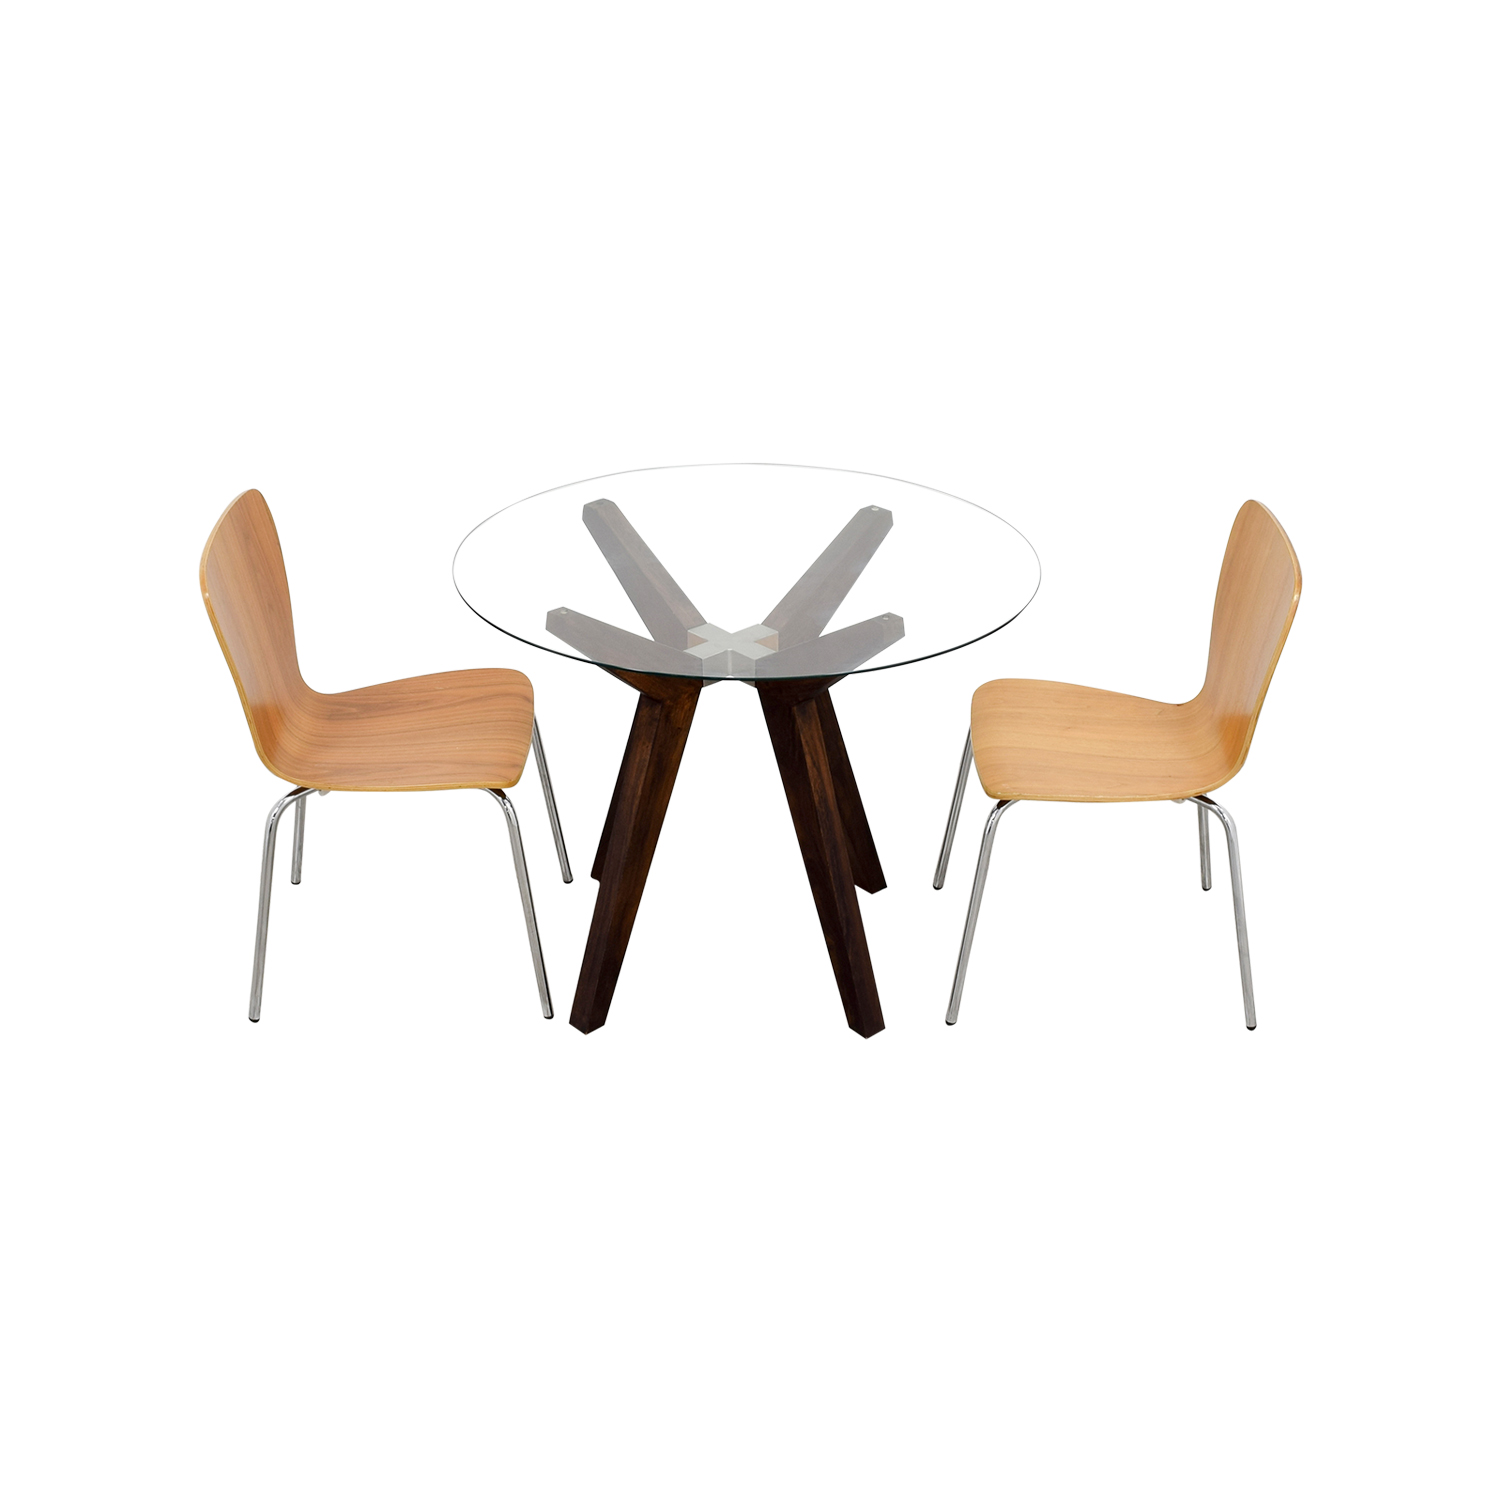 buy Crate & Barrel Crate & Barrel Strut Round Dining Table Set online